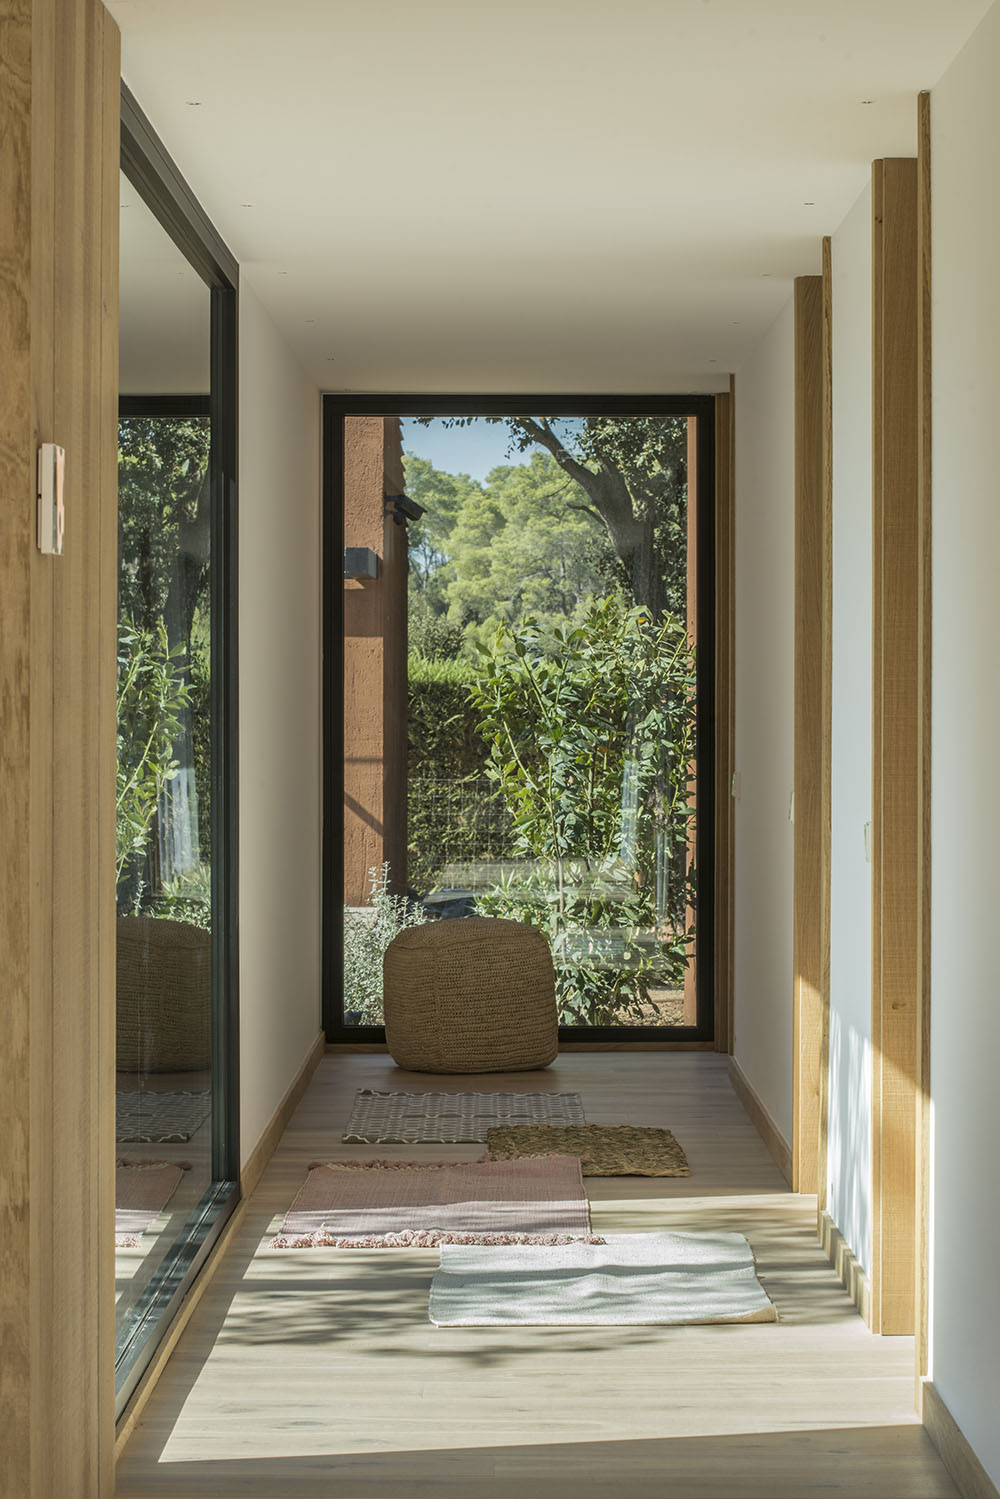 A hallway ends in a large window, leading the eye to the trees outside.